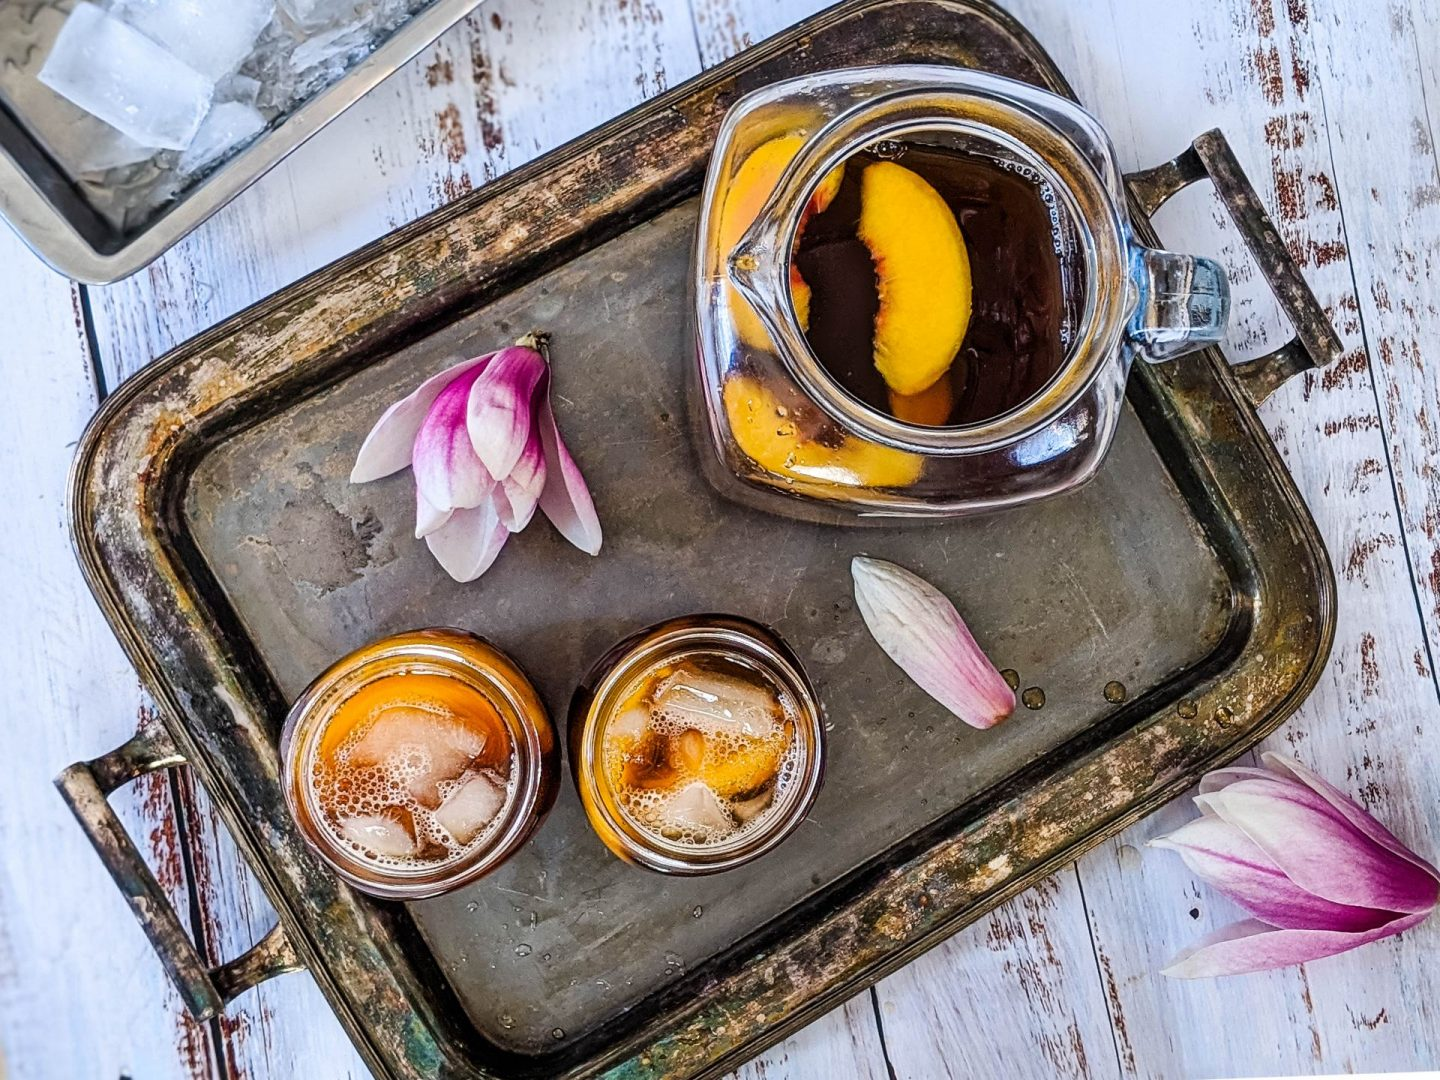 Peach Iced Tea (Cold Brew, Stove Top or Instant Pot)